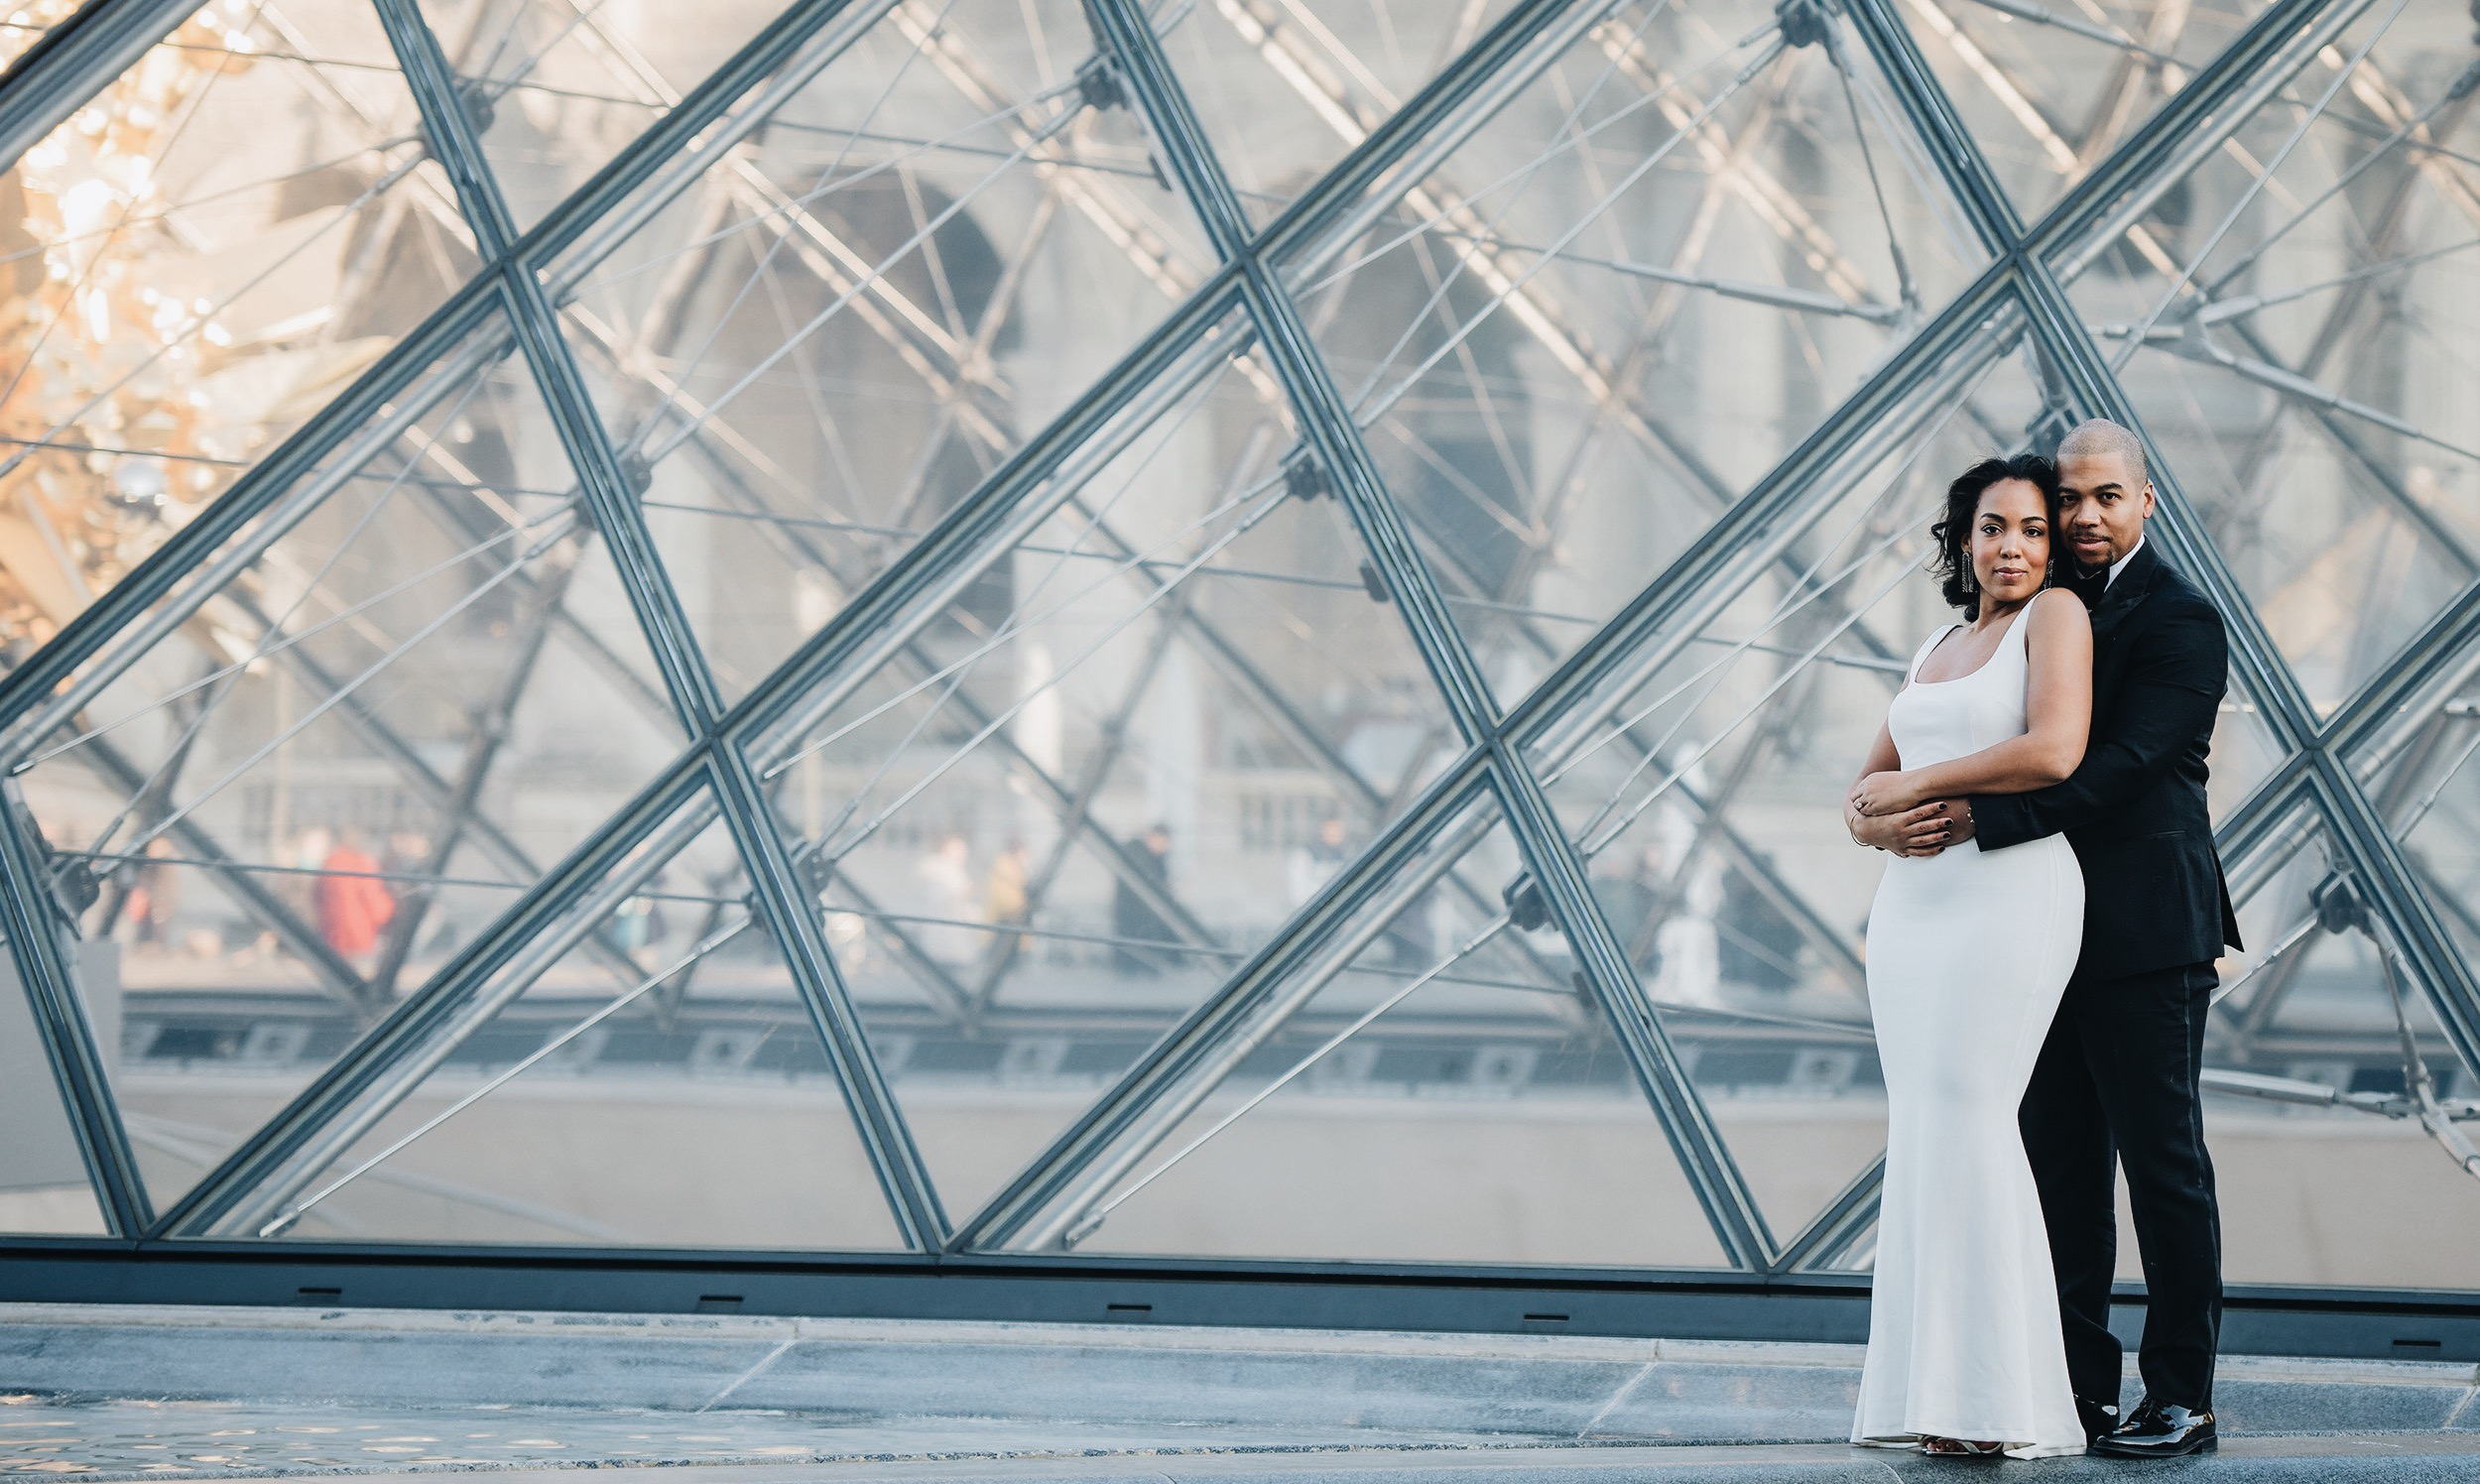 paris-engagement-session-the-louvre-katie-may-lucy-dress-anthropologie-bhldn-bridal-gown-bridesmaid-dress-the-black-tux-tuxedo-suit-rental-velvet-bow-tie-11.JPG